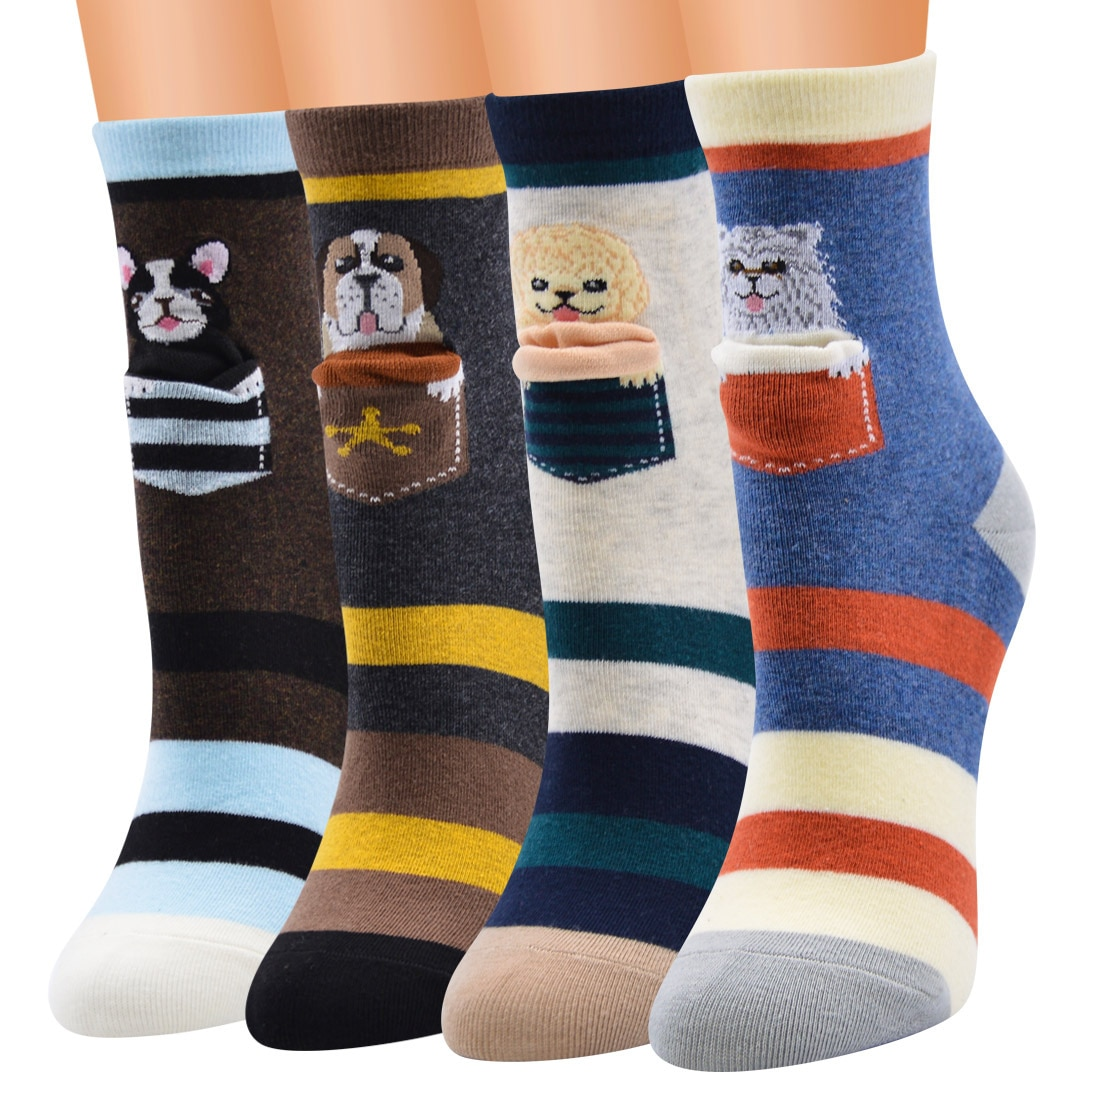 Latest Fashion Low Tube Ankle Size Unique Design Combed Cotton Knitted Novelty Socks for Women And Girls